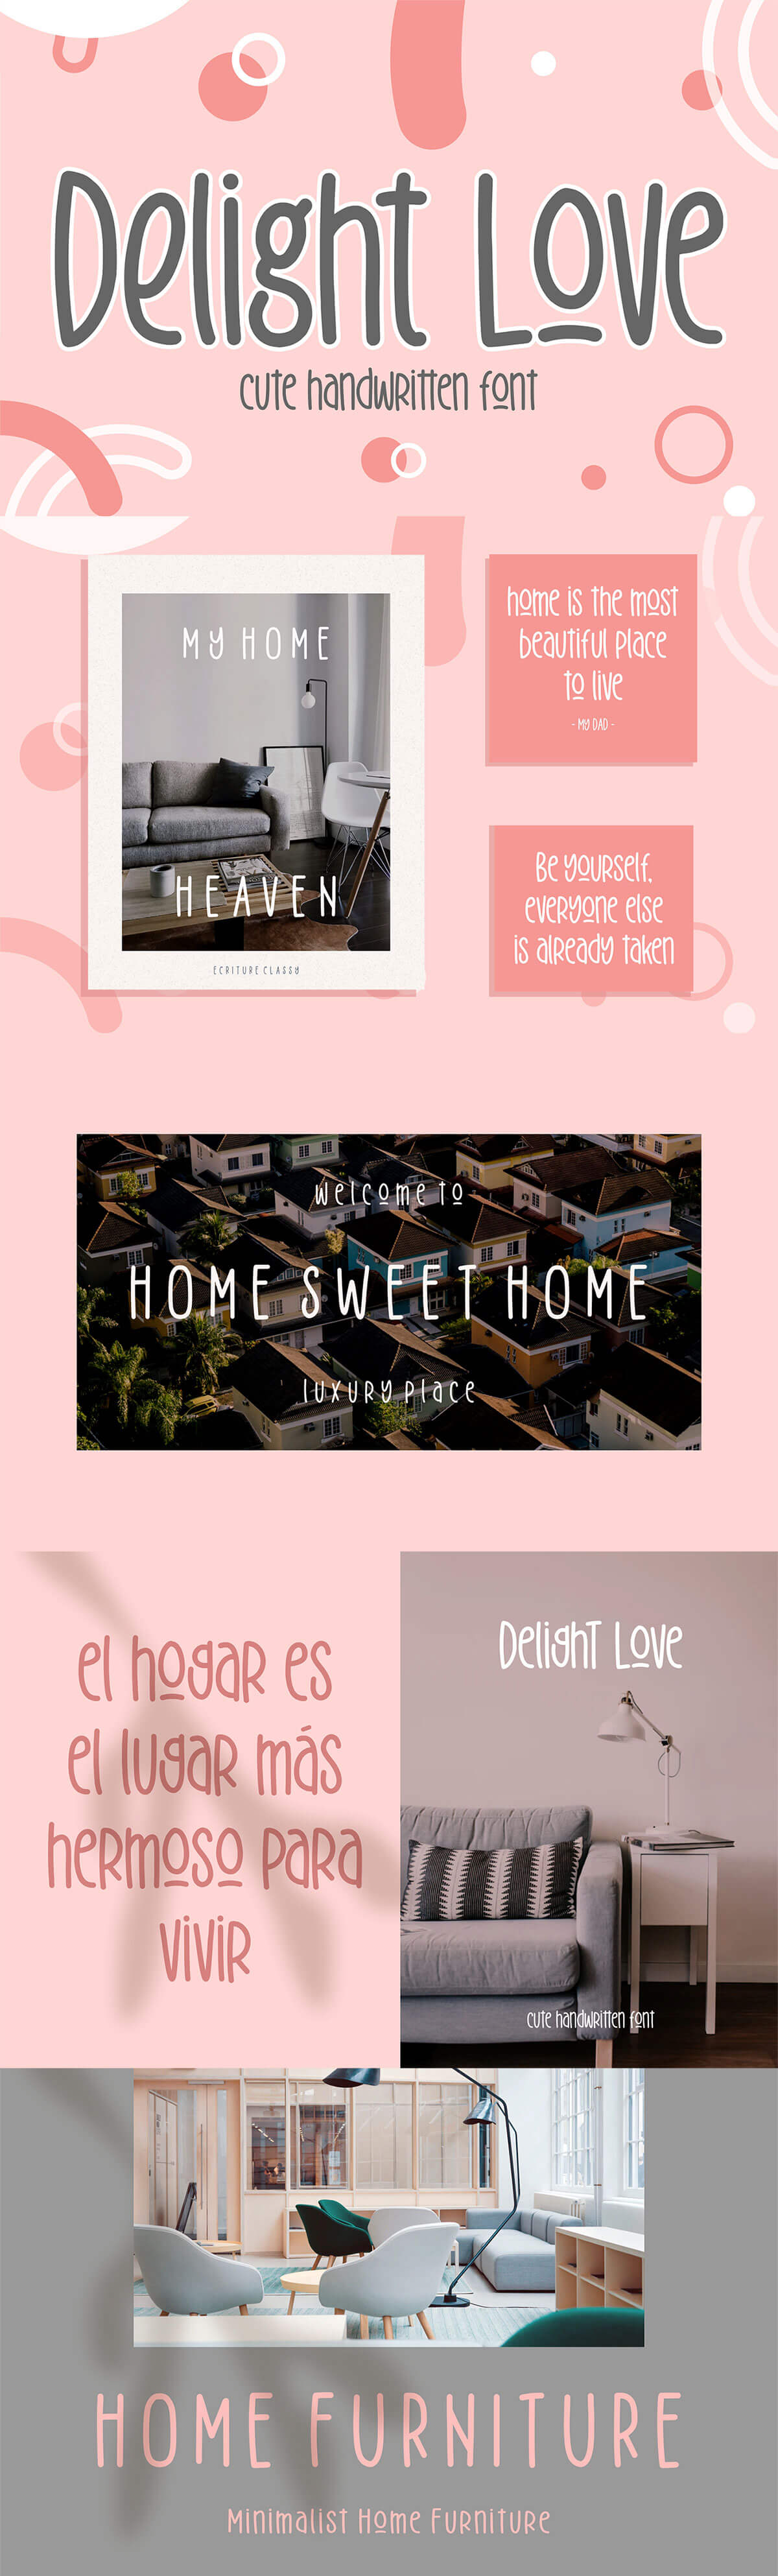 Free Delight Love Handwritten Font